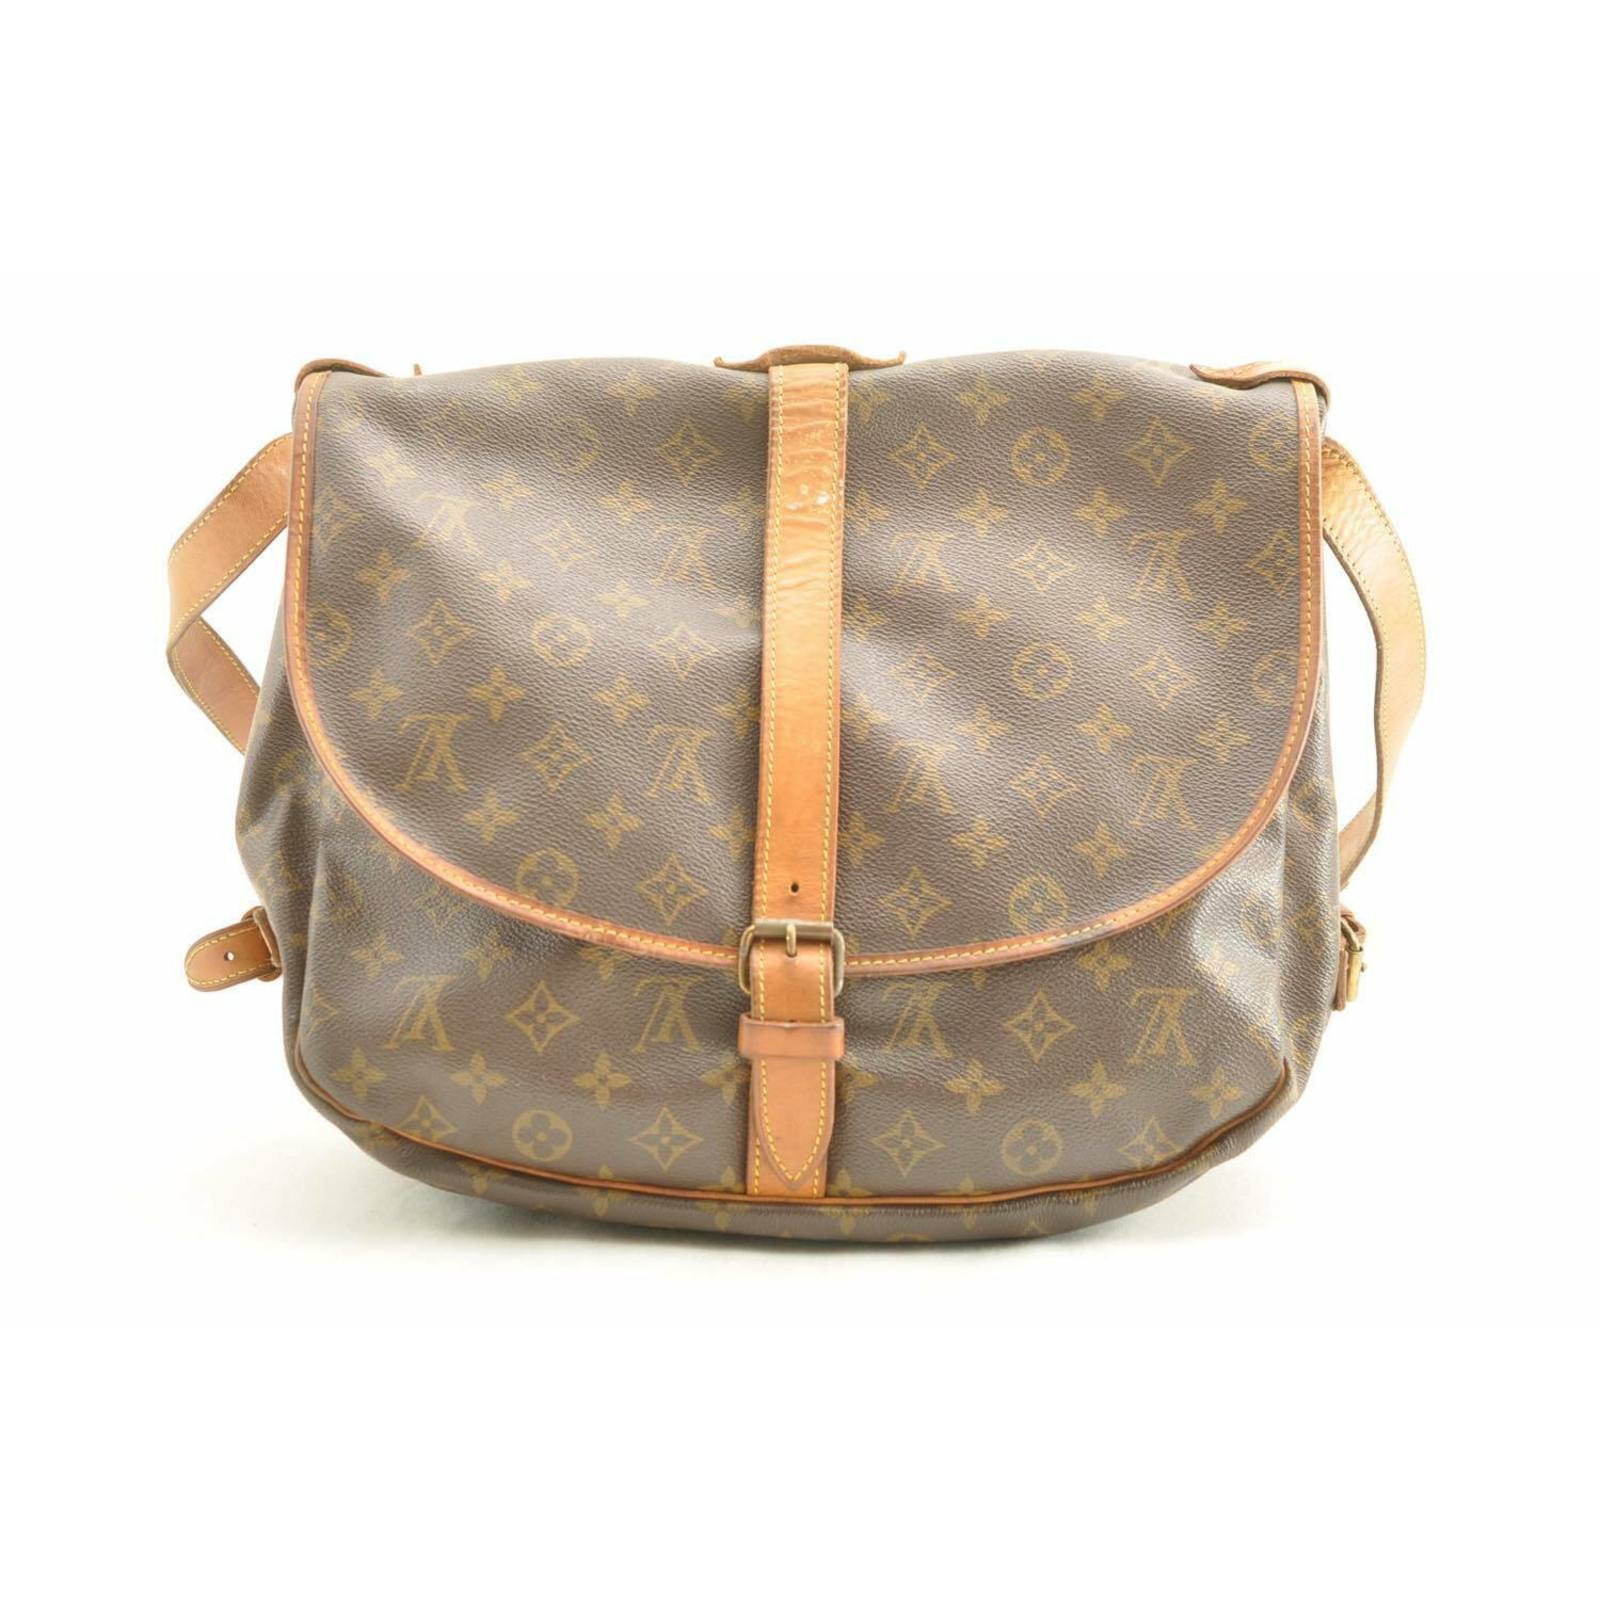 taglia 40 1565e 97b95 Louis Vuitton Borsa a tracolla in Tela in Marrone - Second hand ...